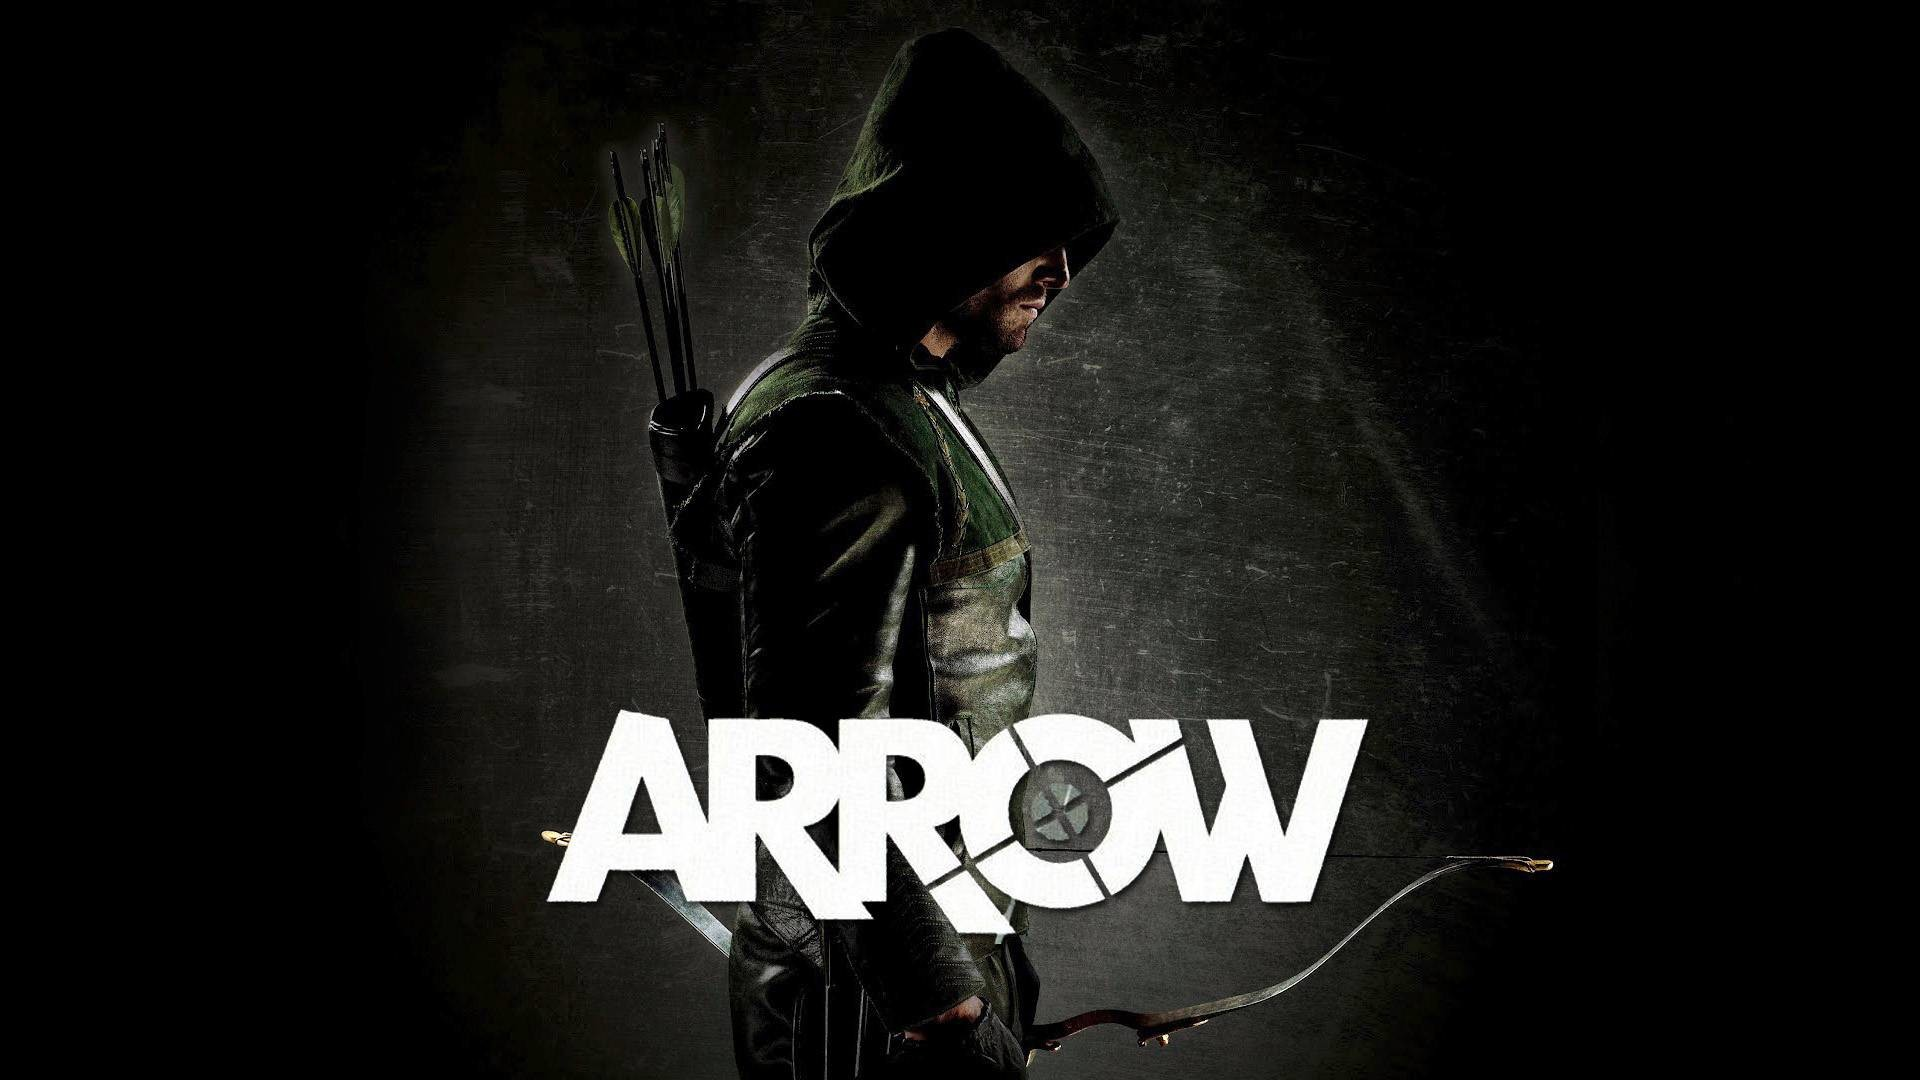 Arrow HD Images whb 9 #ArrowHDImages #Arrow #tvseries #wallpapers